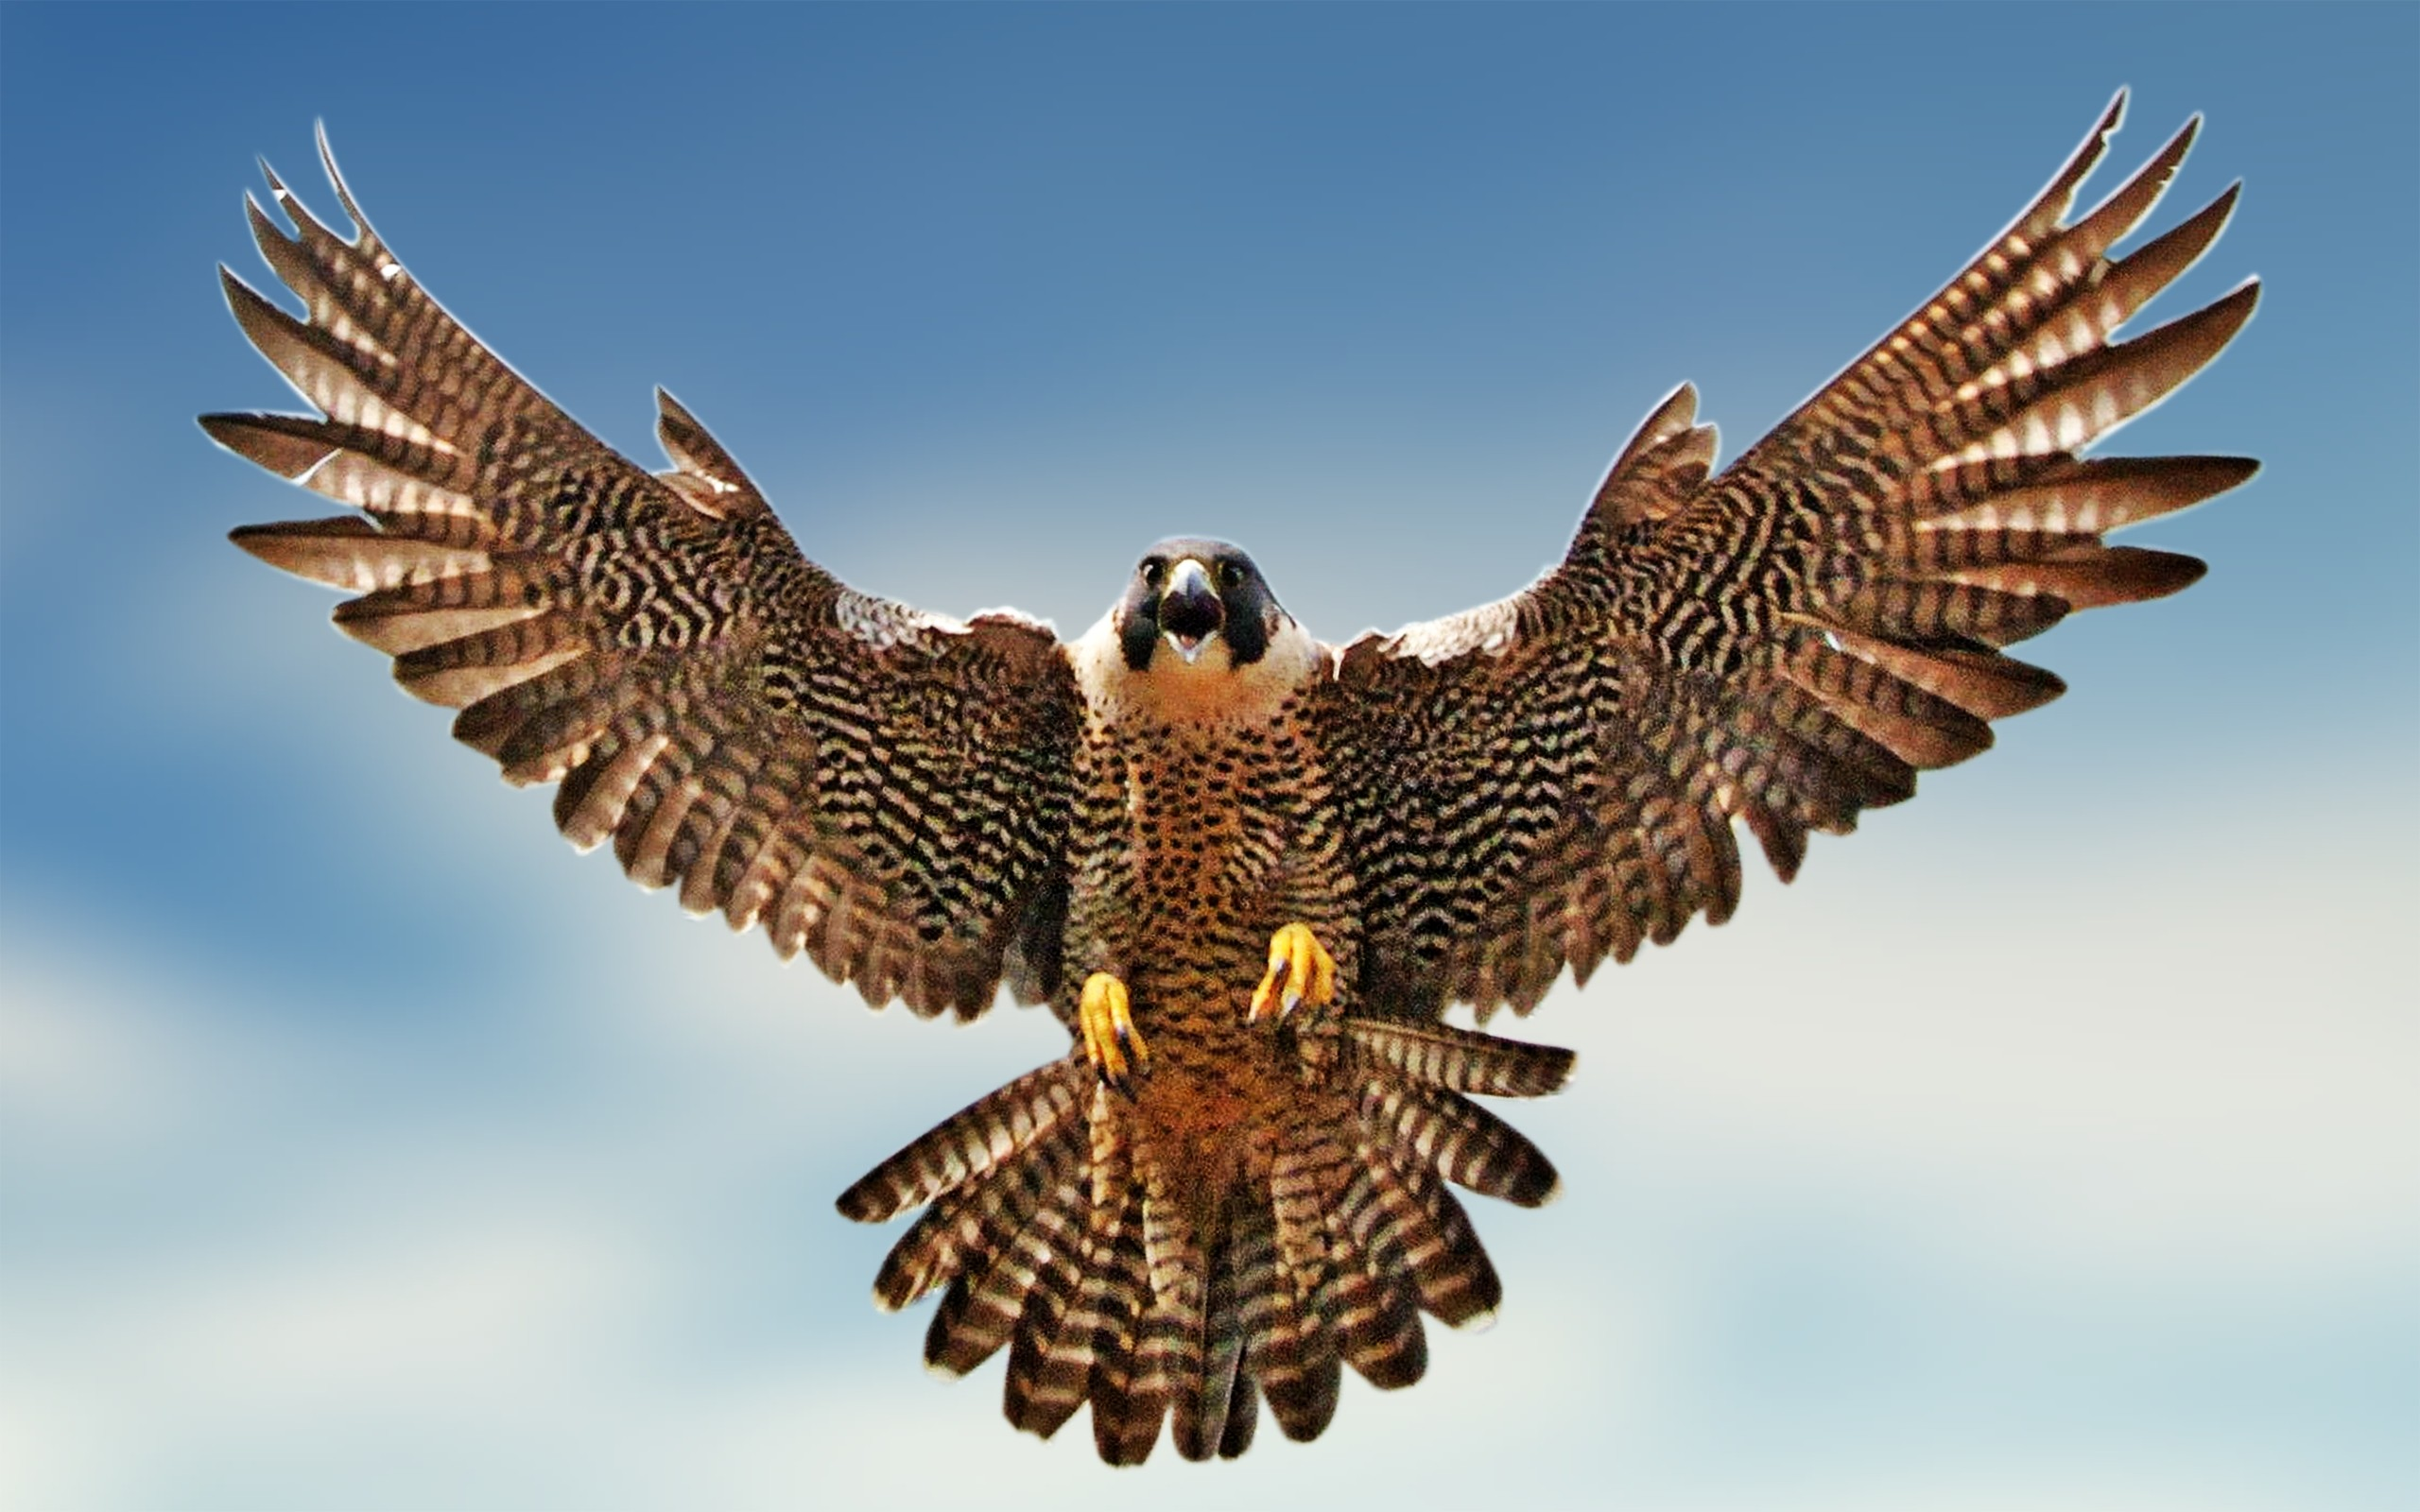 Saudi Prince Takes 80 Falcons on Flight